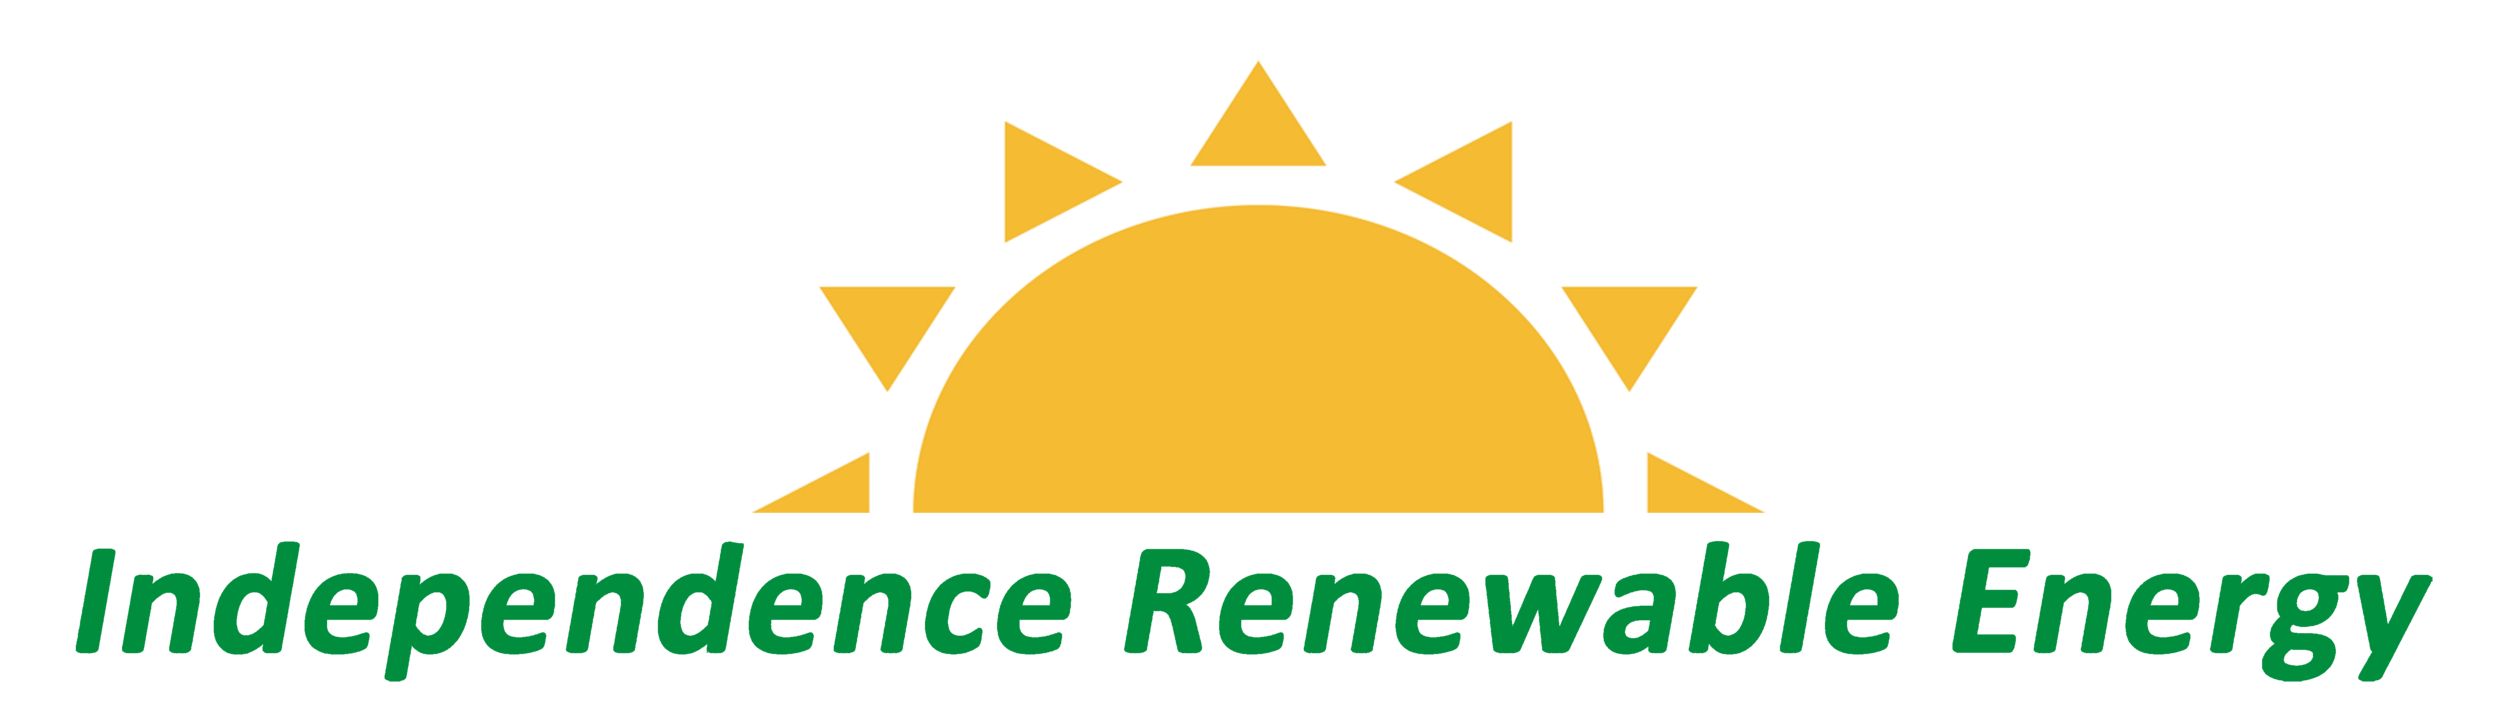 New IRE Sun Logo-Green.png